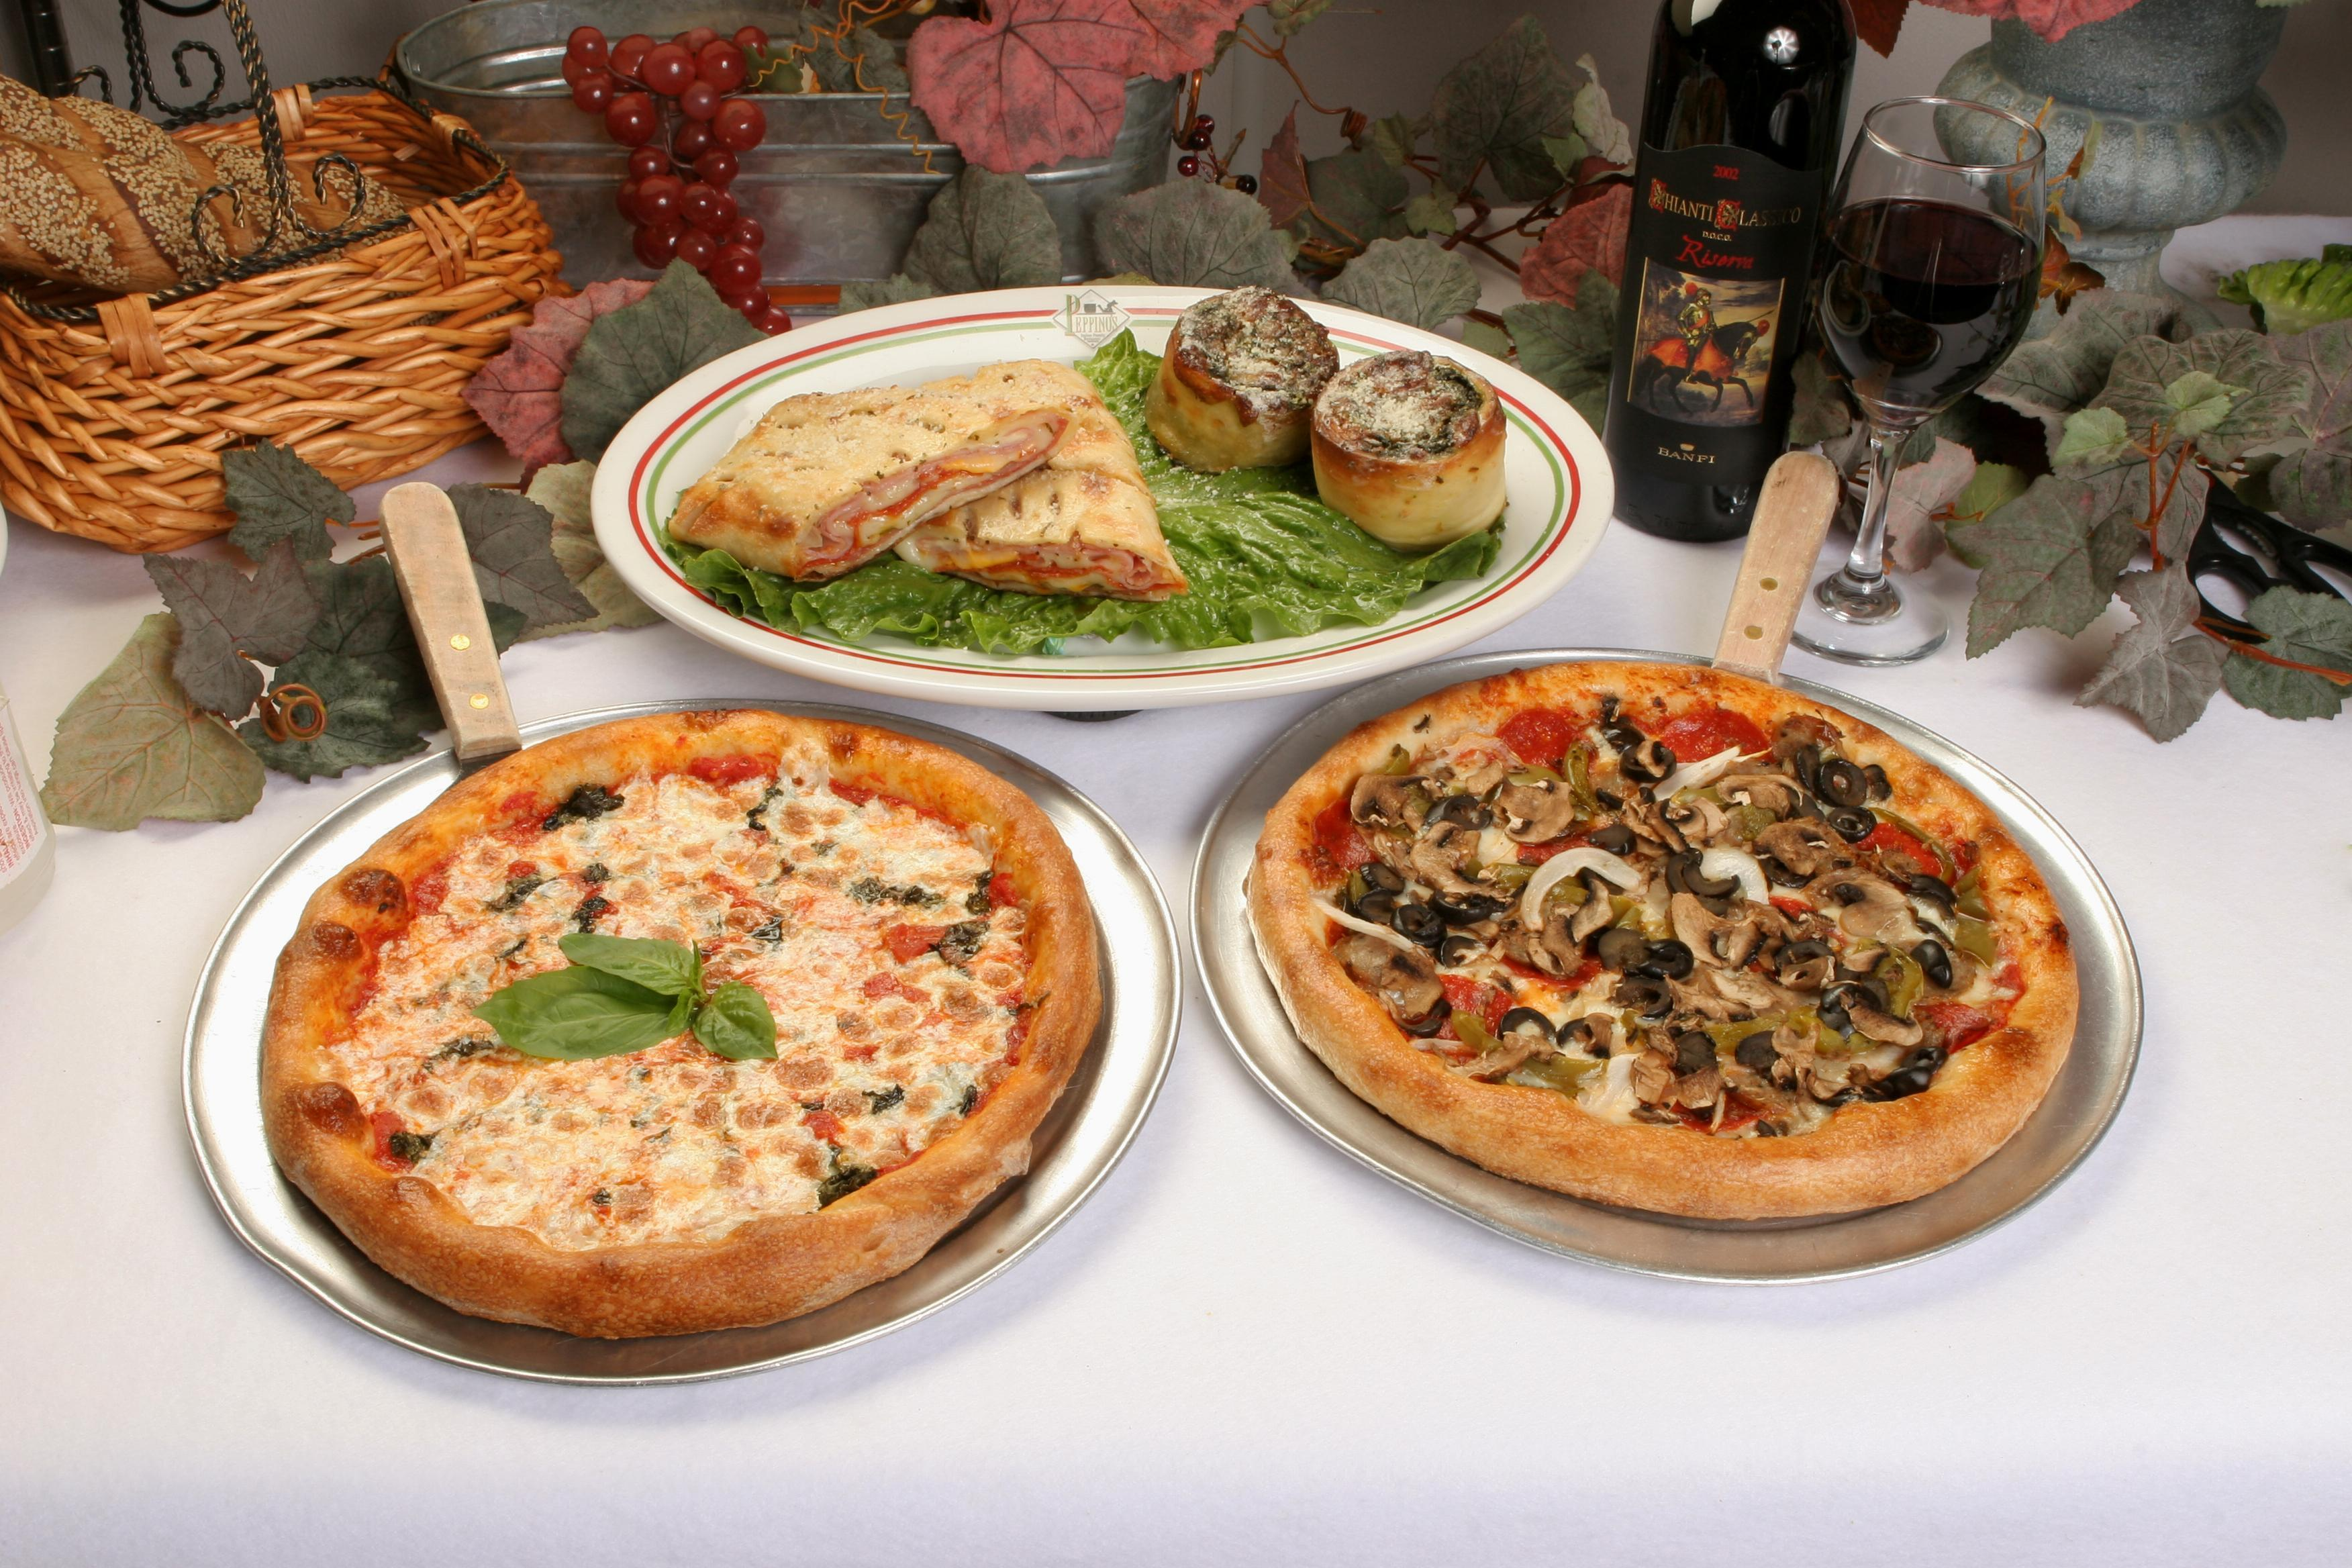 Peppino's Italian Family Restaurant, Foothill Ranch CA